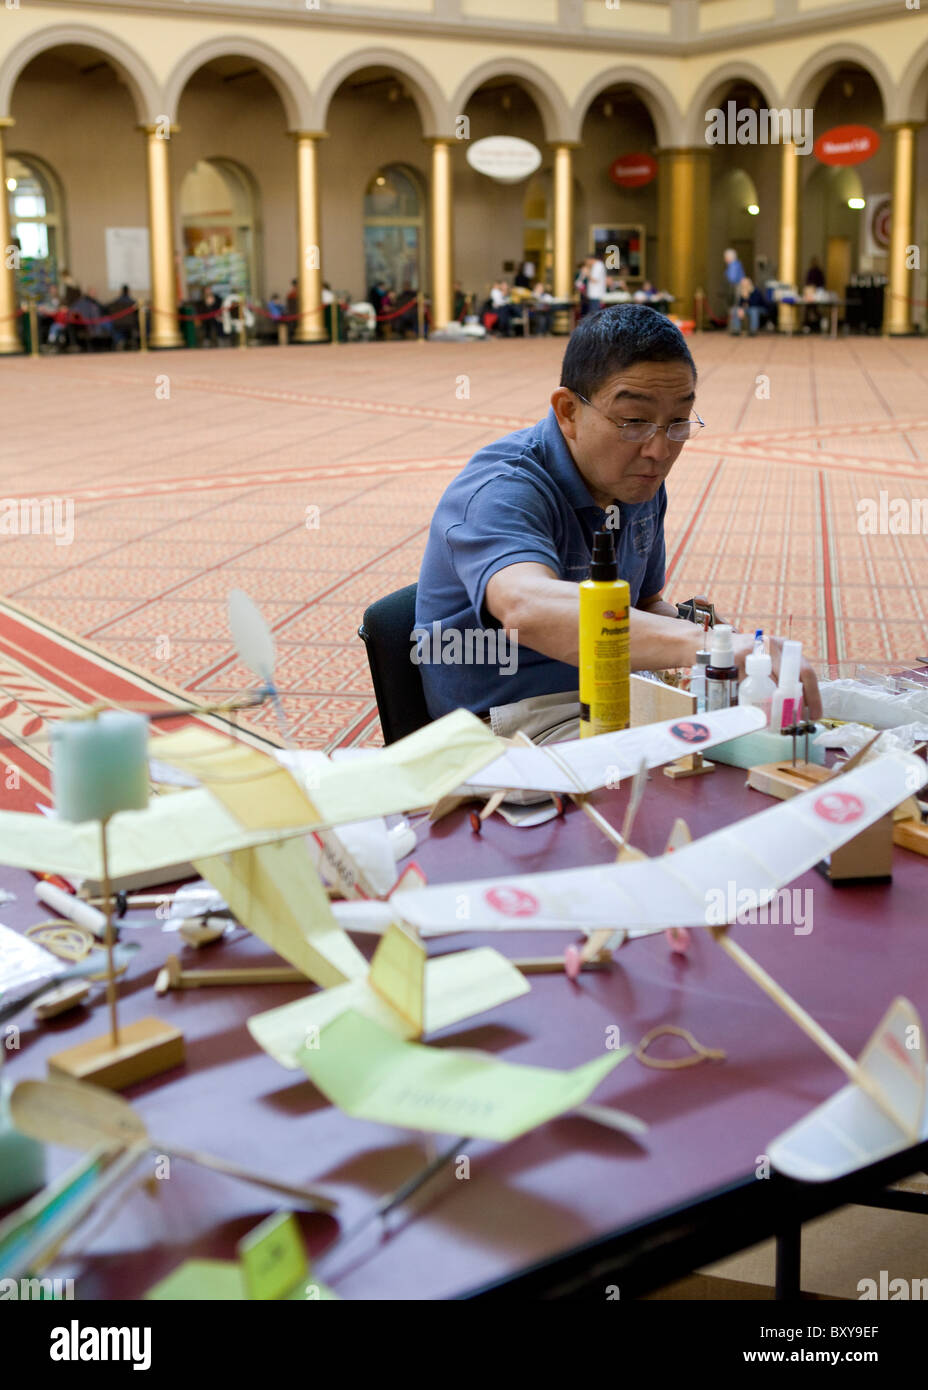 A middle aged Asian man constructing model airplanes - Stock Image